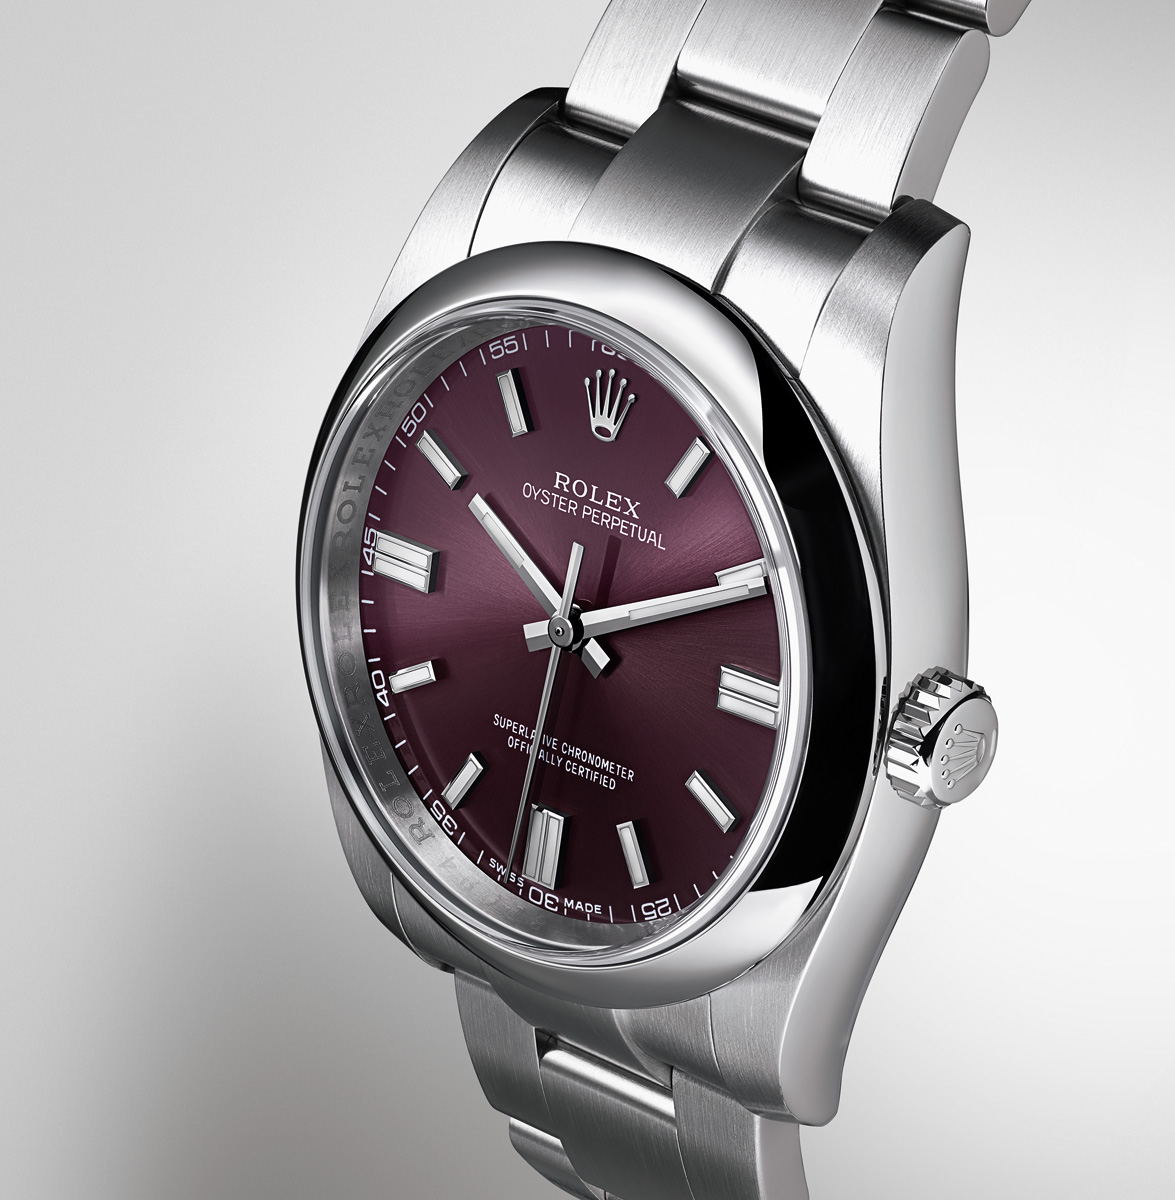 6ad1a17f1ce35 Baselworld 2014  Introducing the Entry Level Rolex Oyster Perpetual ...